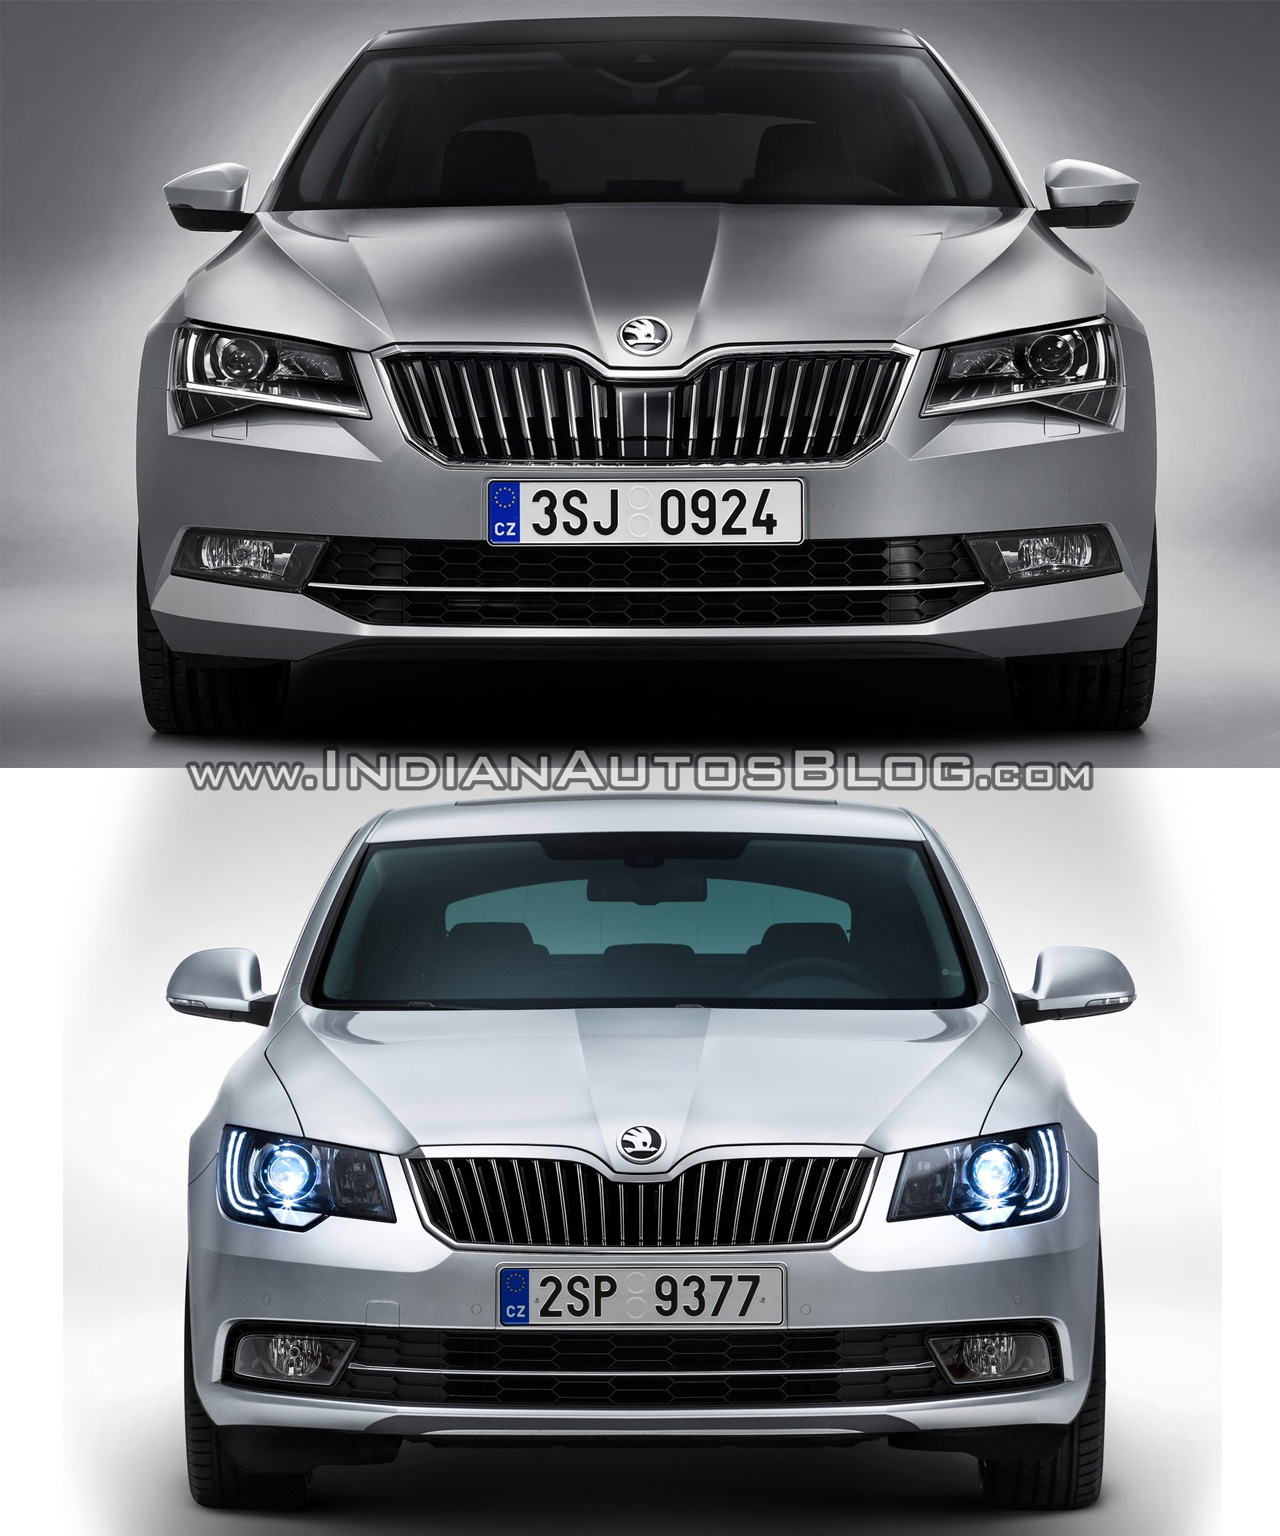 2016 Skoda Superb Vs 2014 Skoda Superb Old Vs New